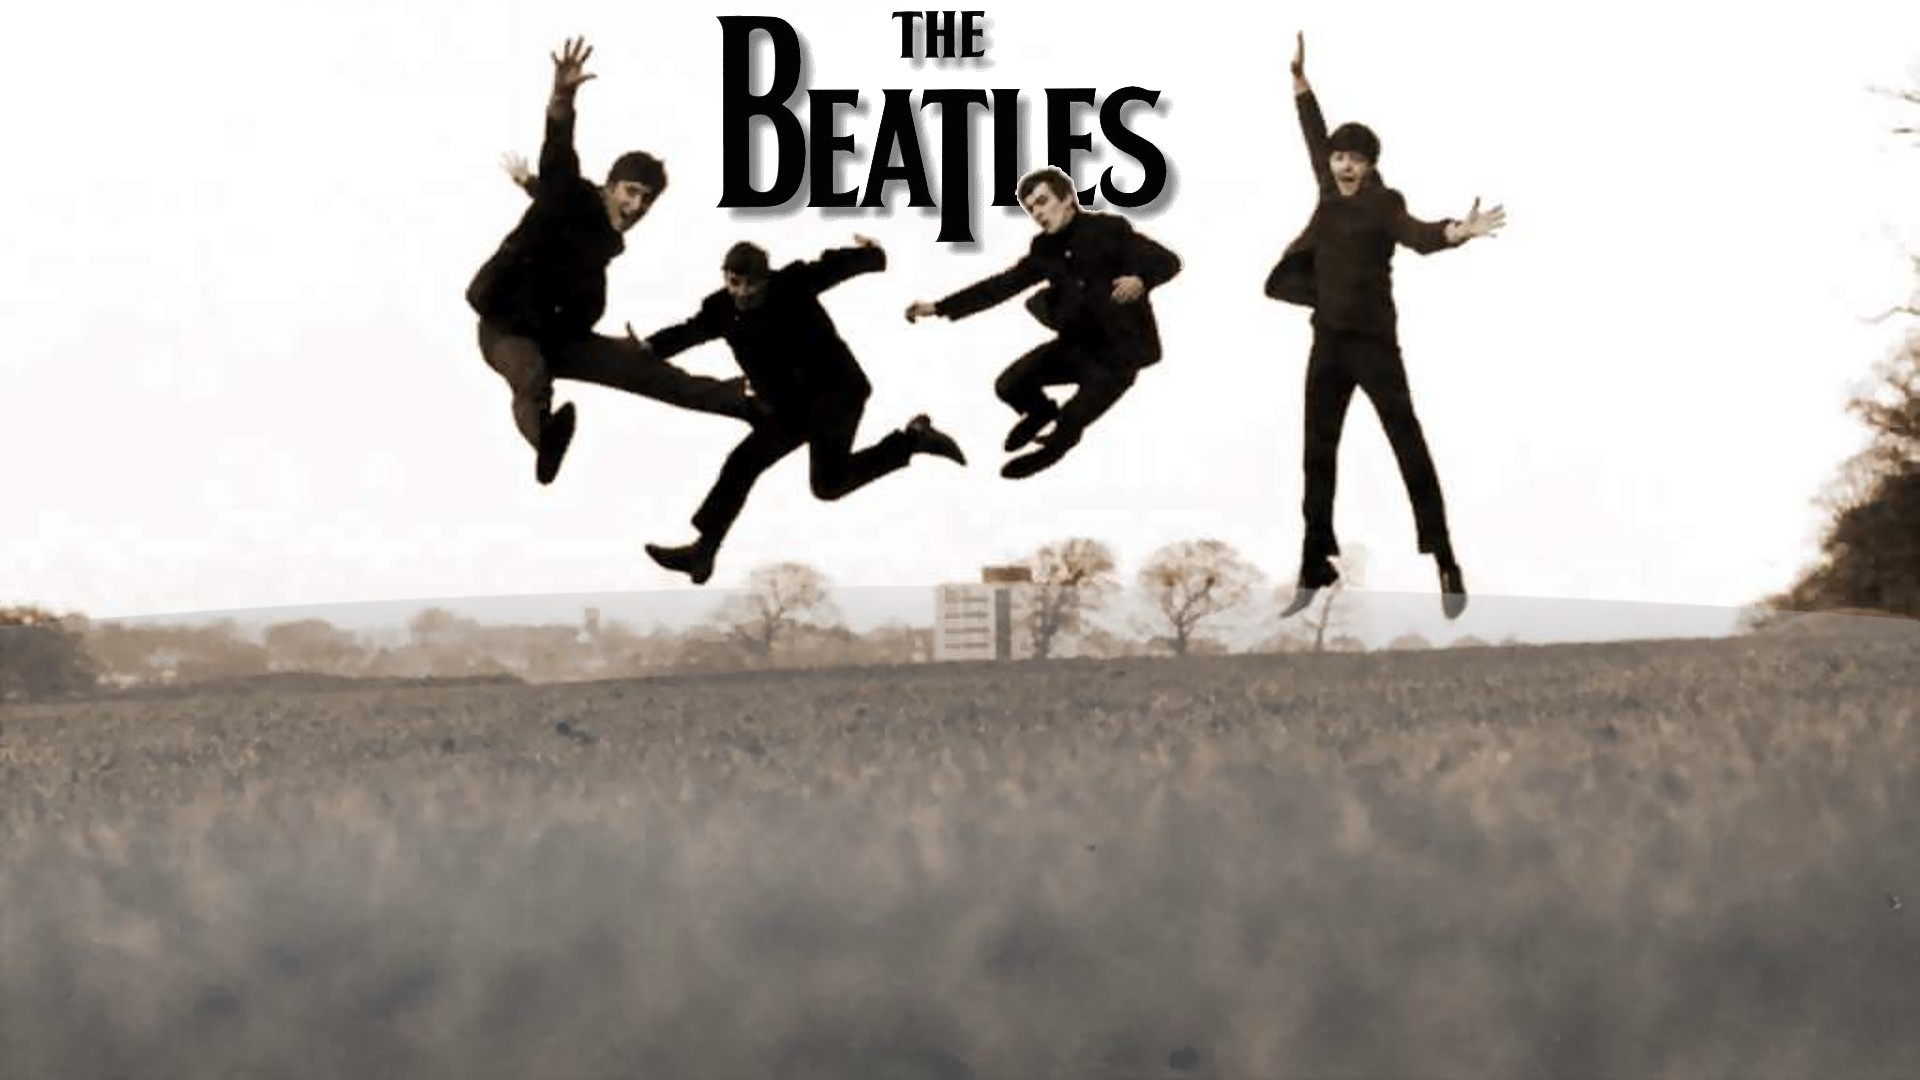 1920x1080 The Beatles Desktop Wallpapers